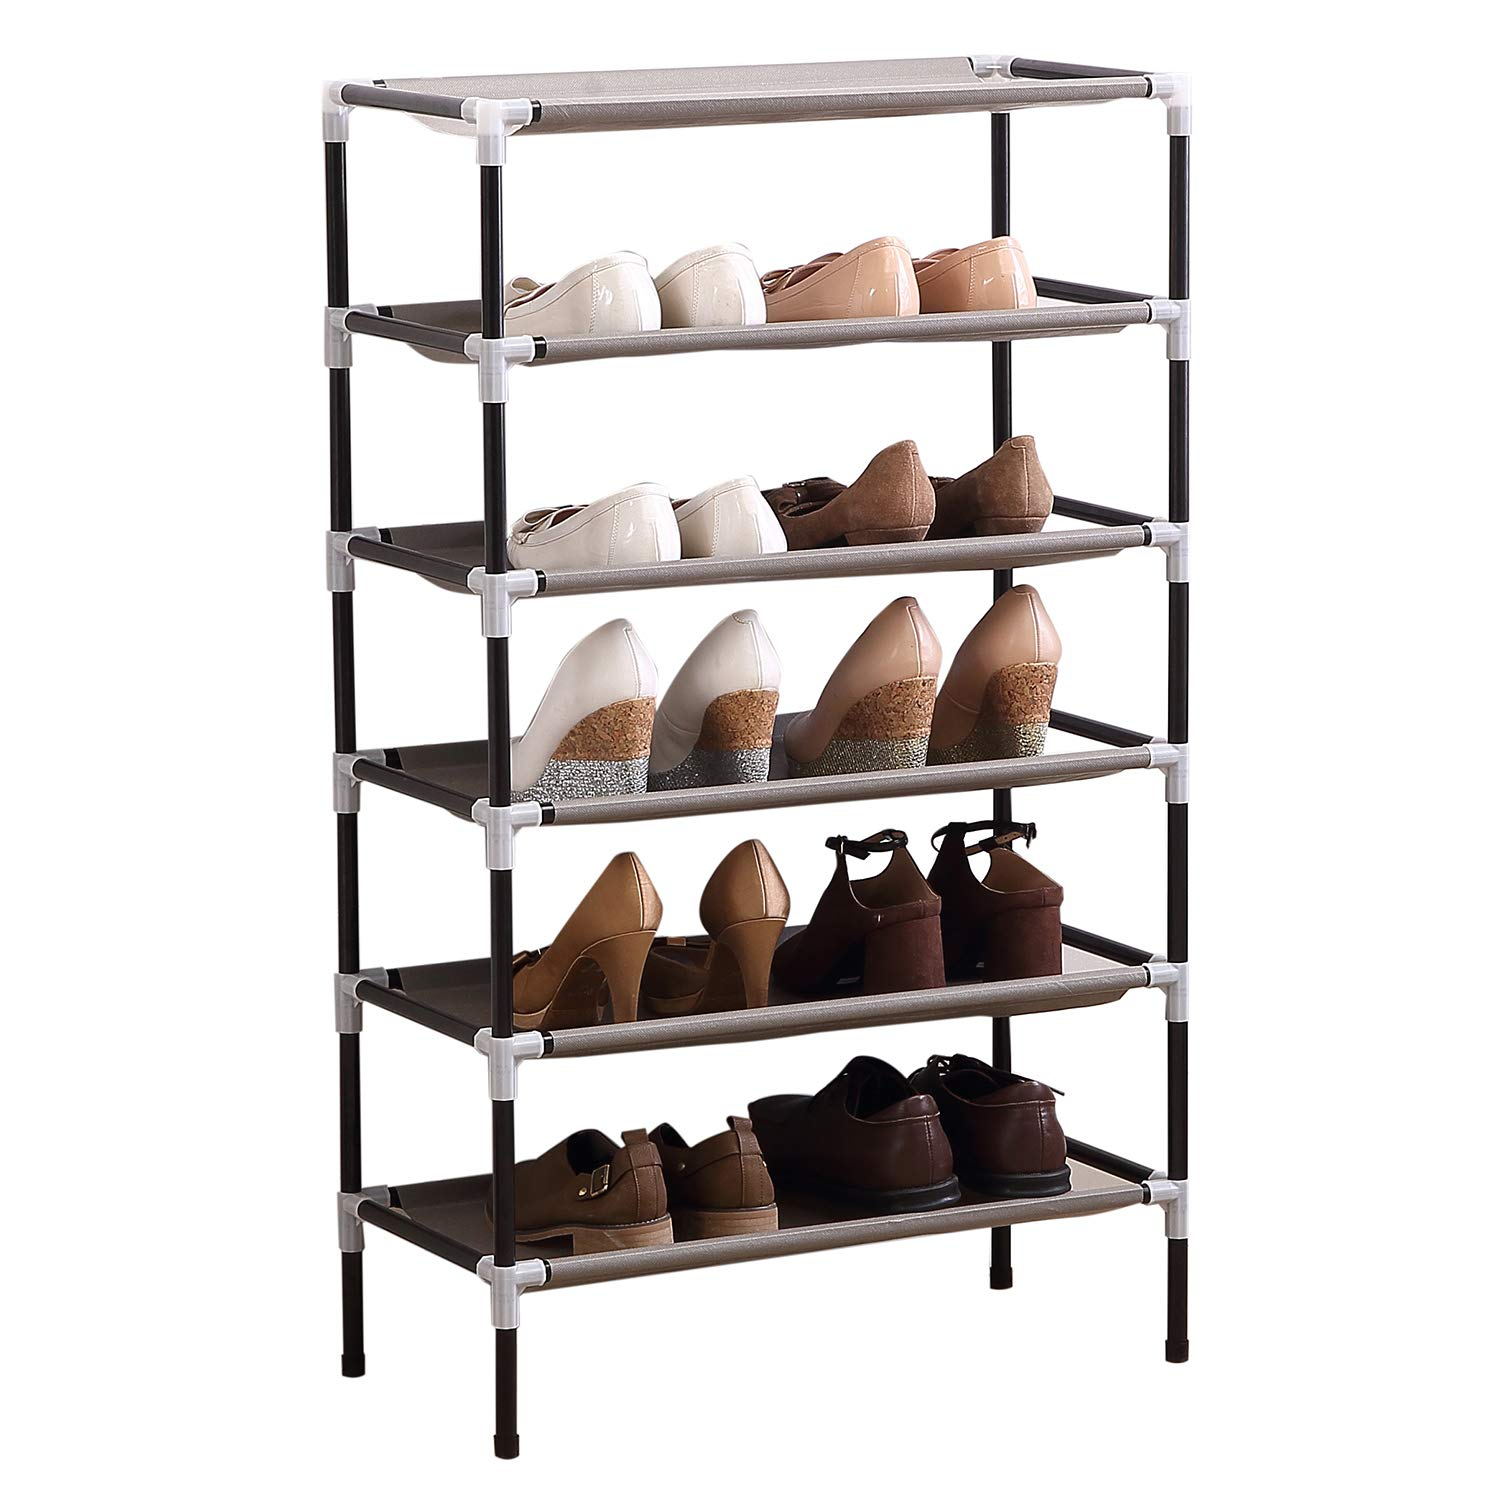 4 Tiers Shoe Storage Rack Organiser Shelf Hold Stand for 12 Pairs Shoes